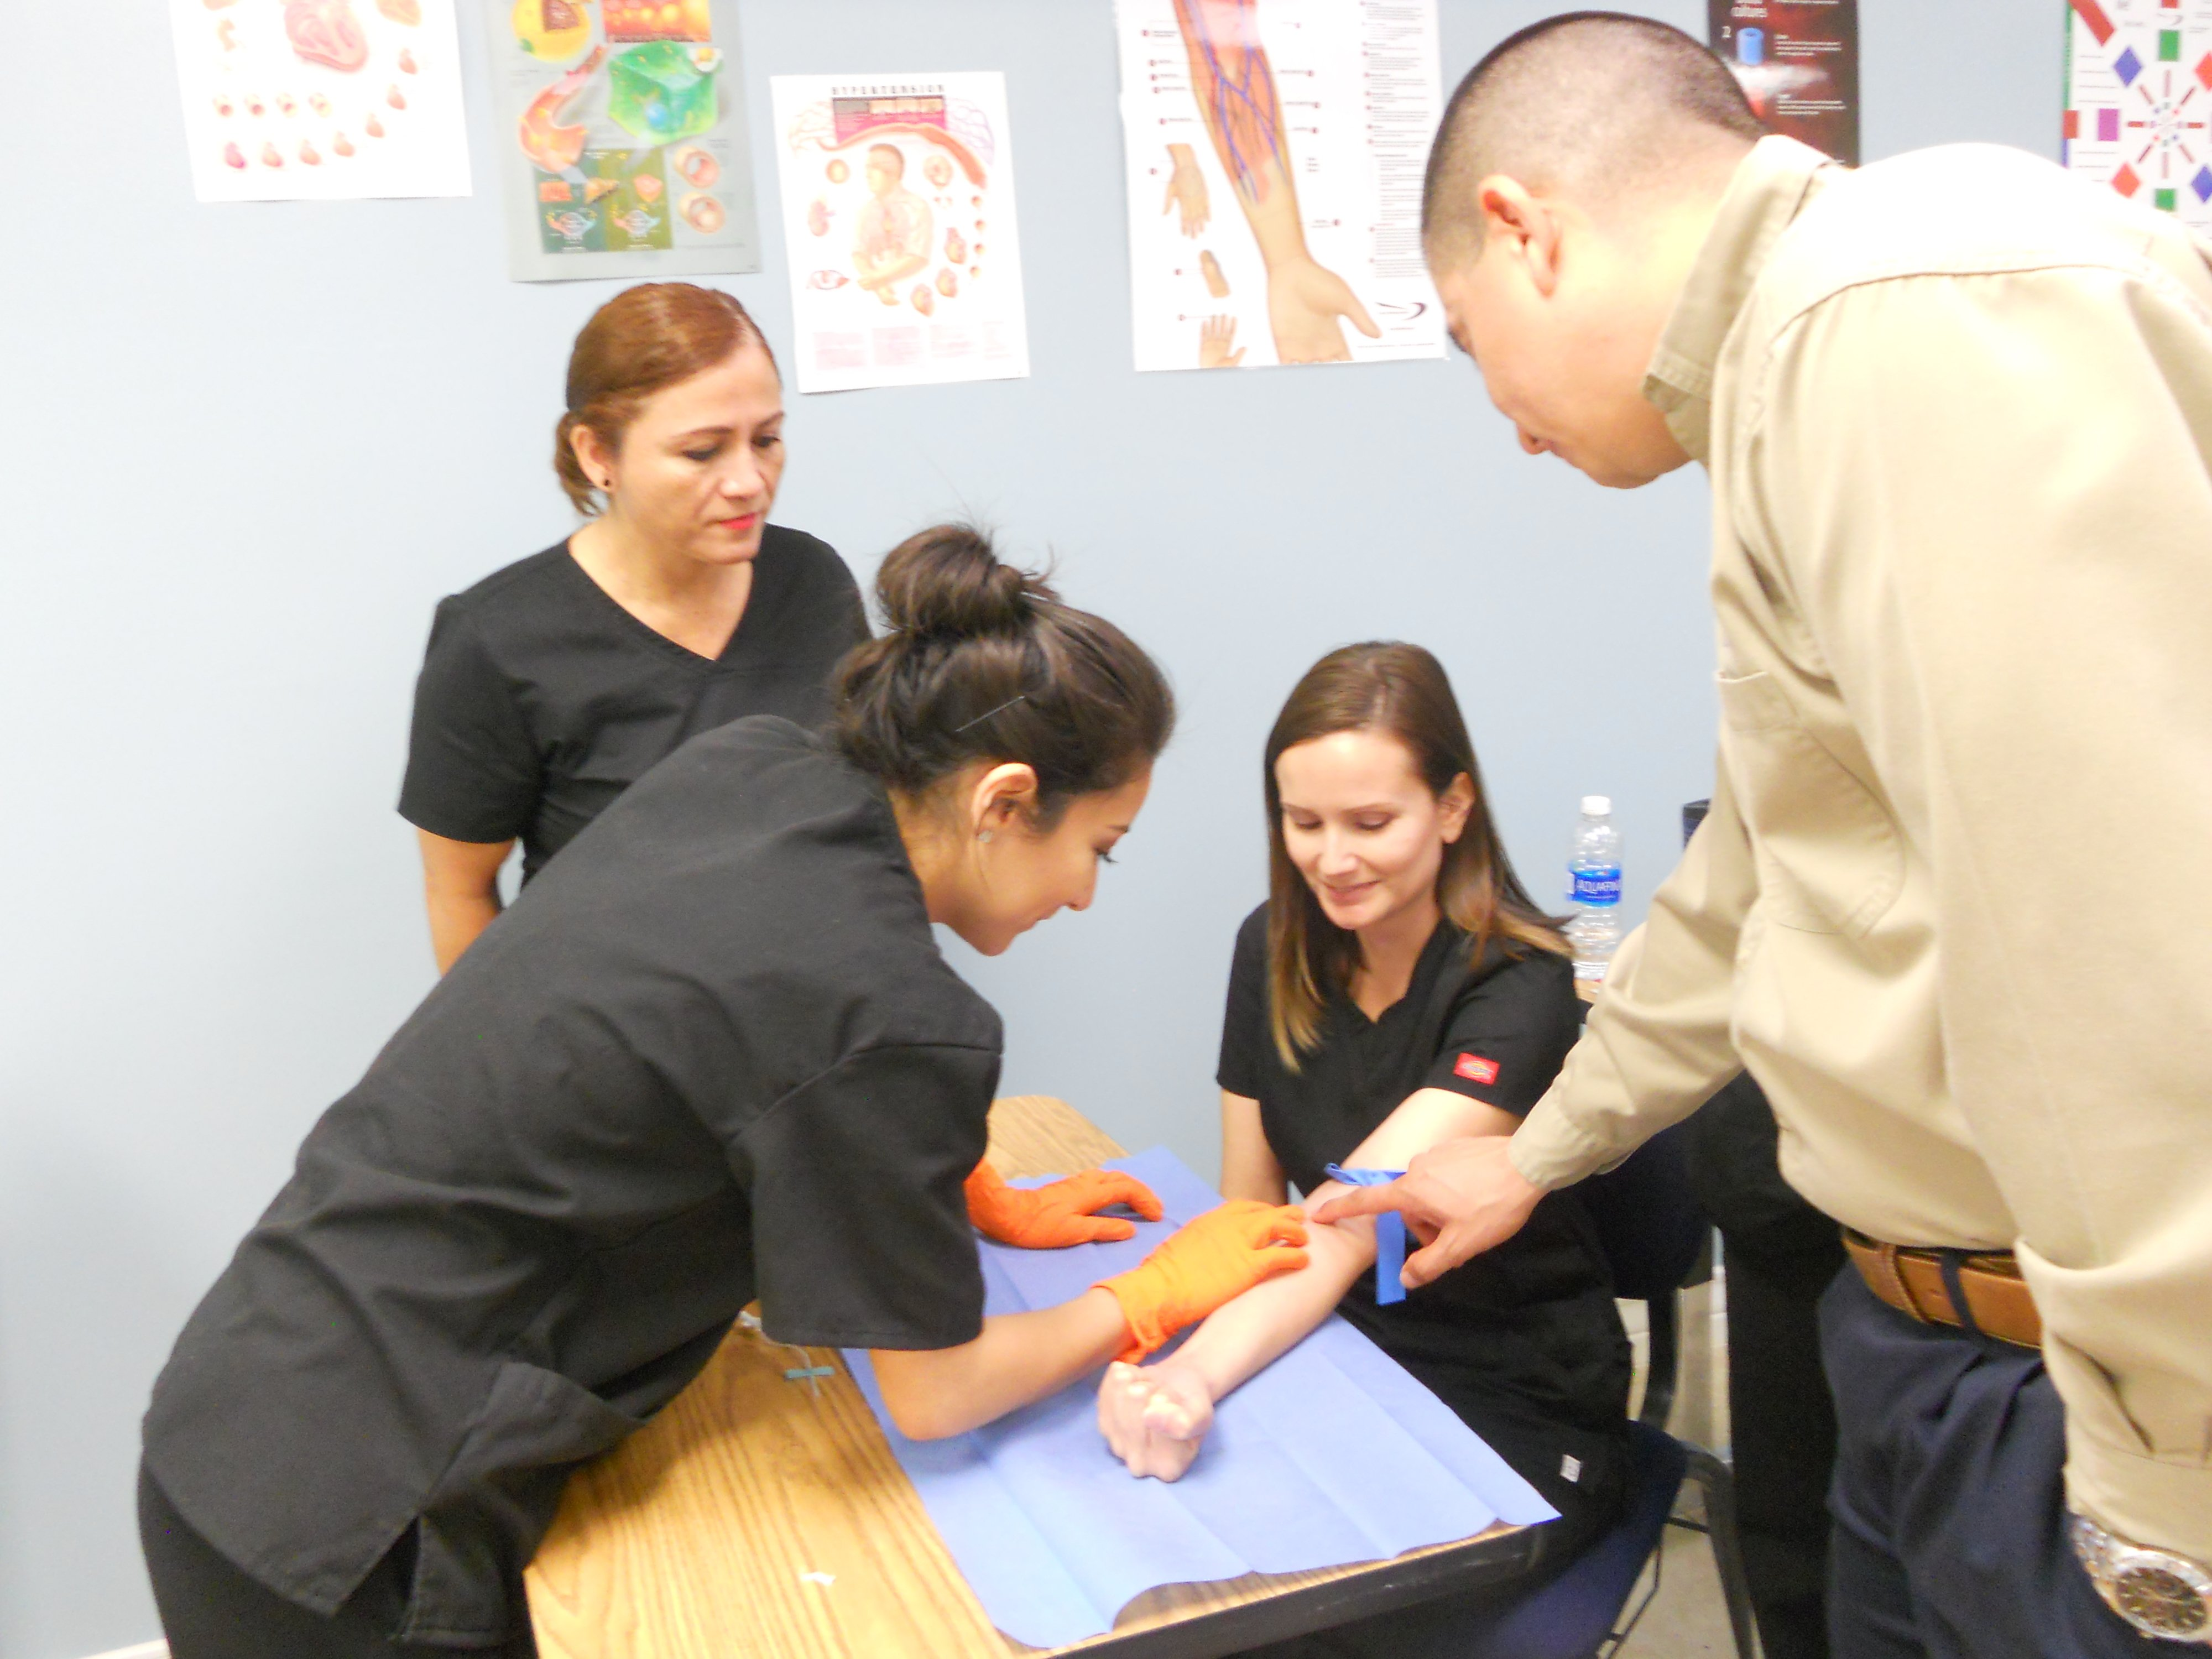 Phlebotomy technician training laredo tx health care provider advantages of our phlebotomy technician training program xflitez Images